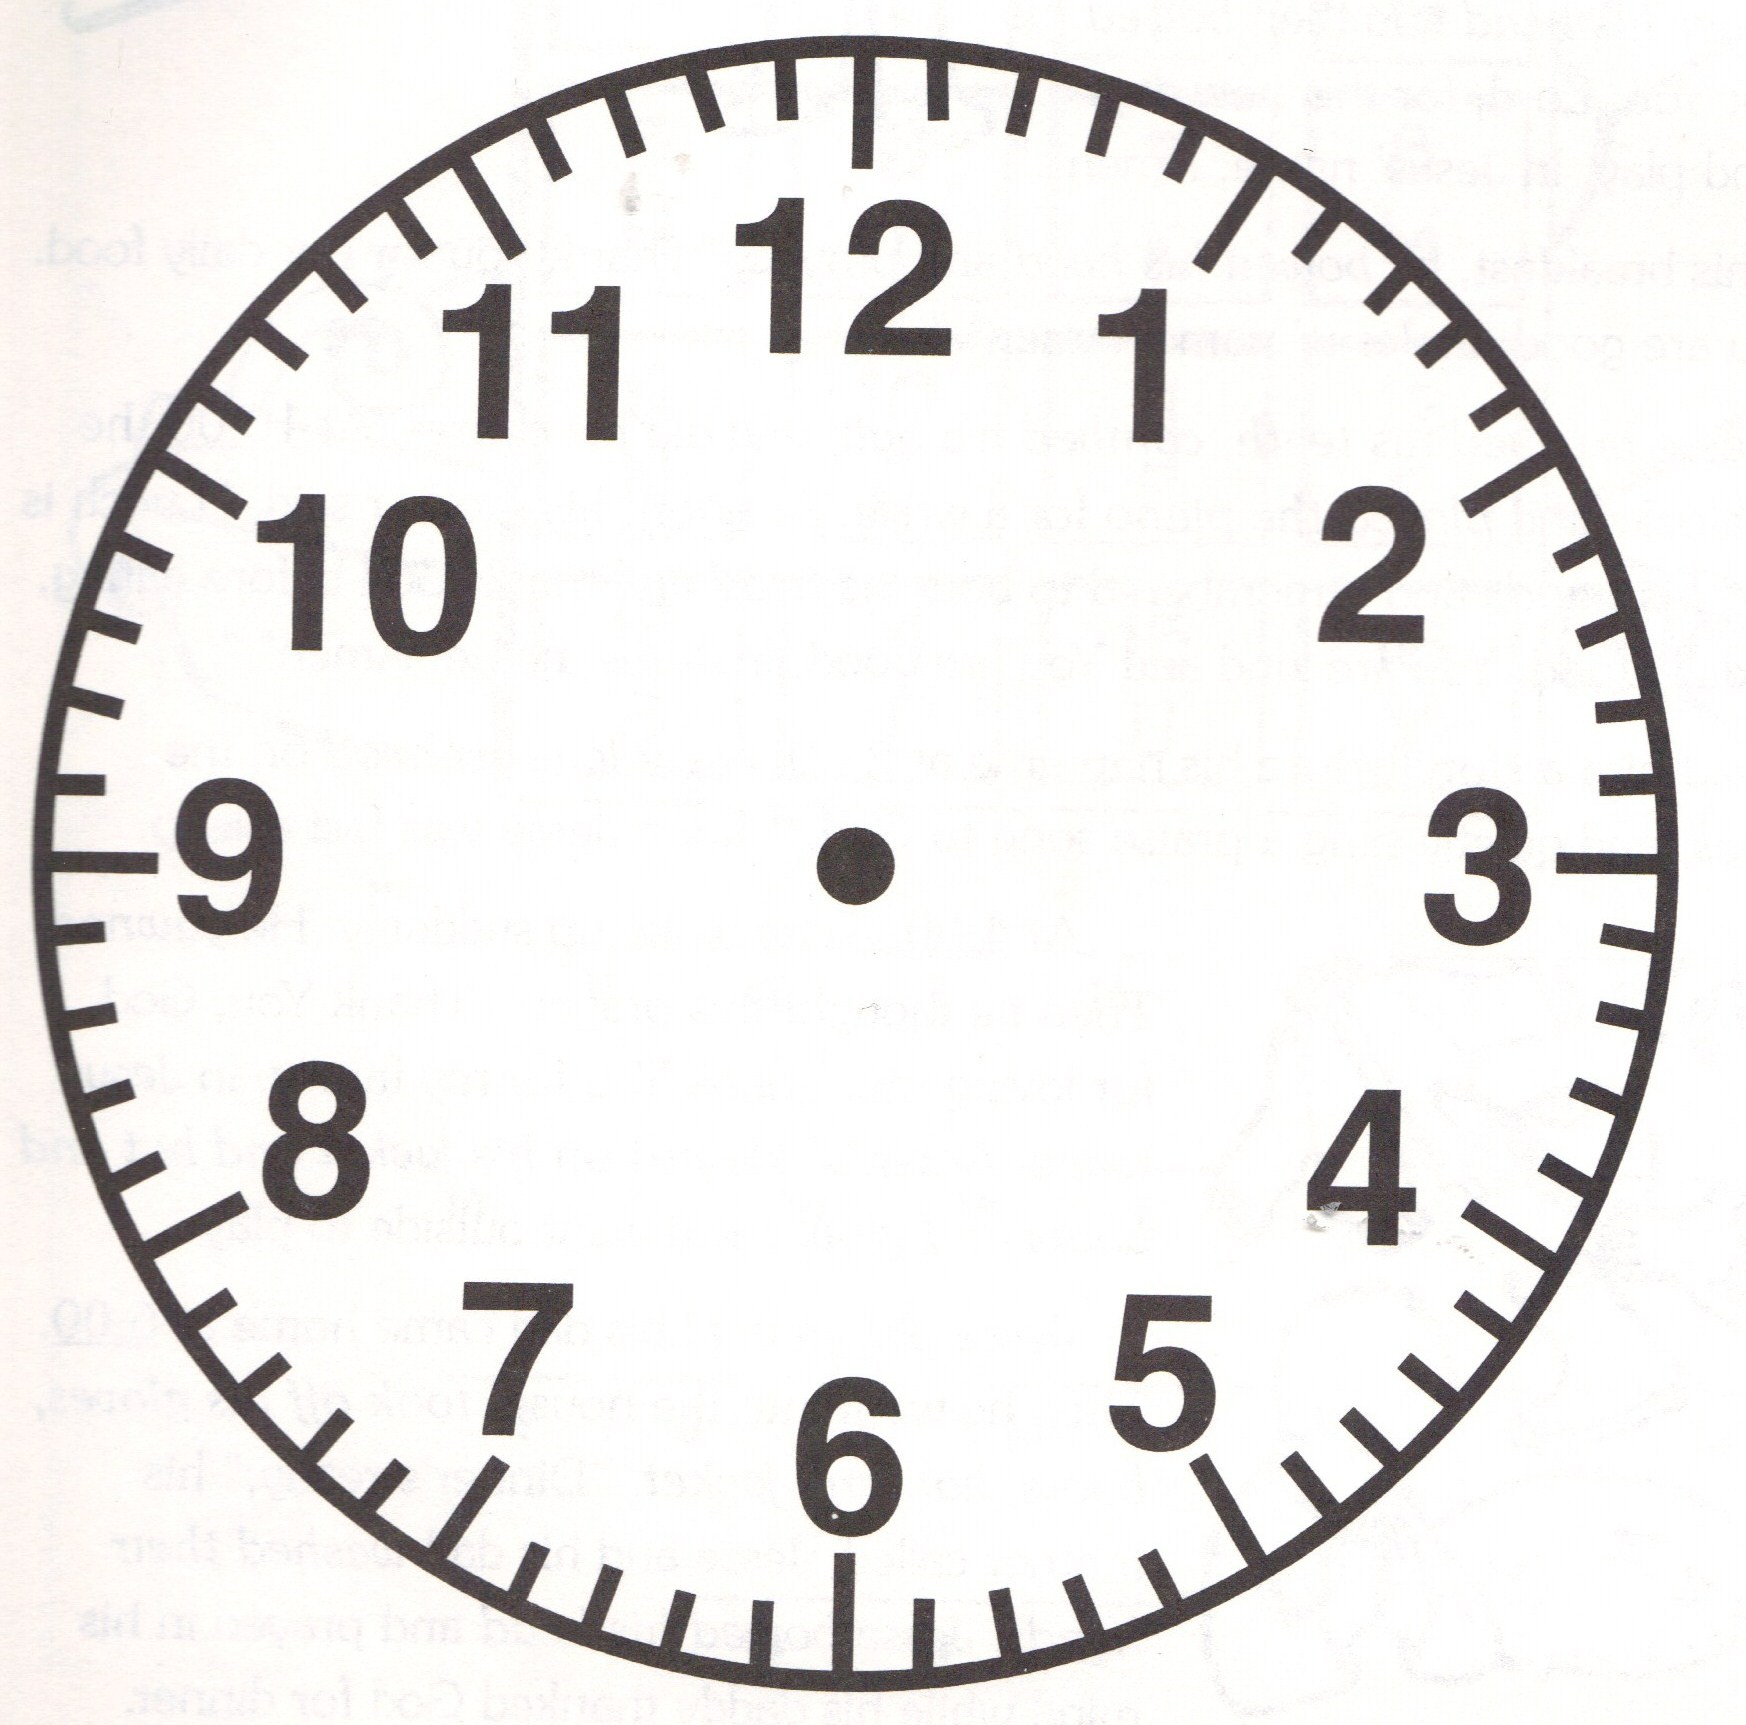 Free Image Of A Clock Download Free Clip Art Free Clip Art On Clipart Library